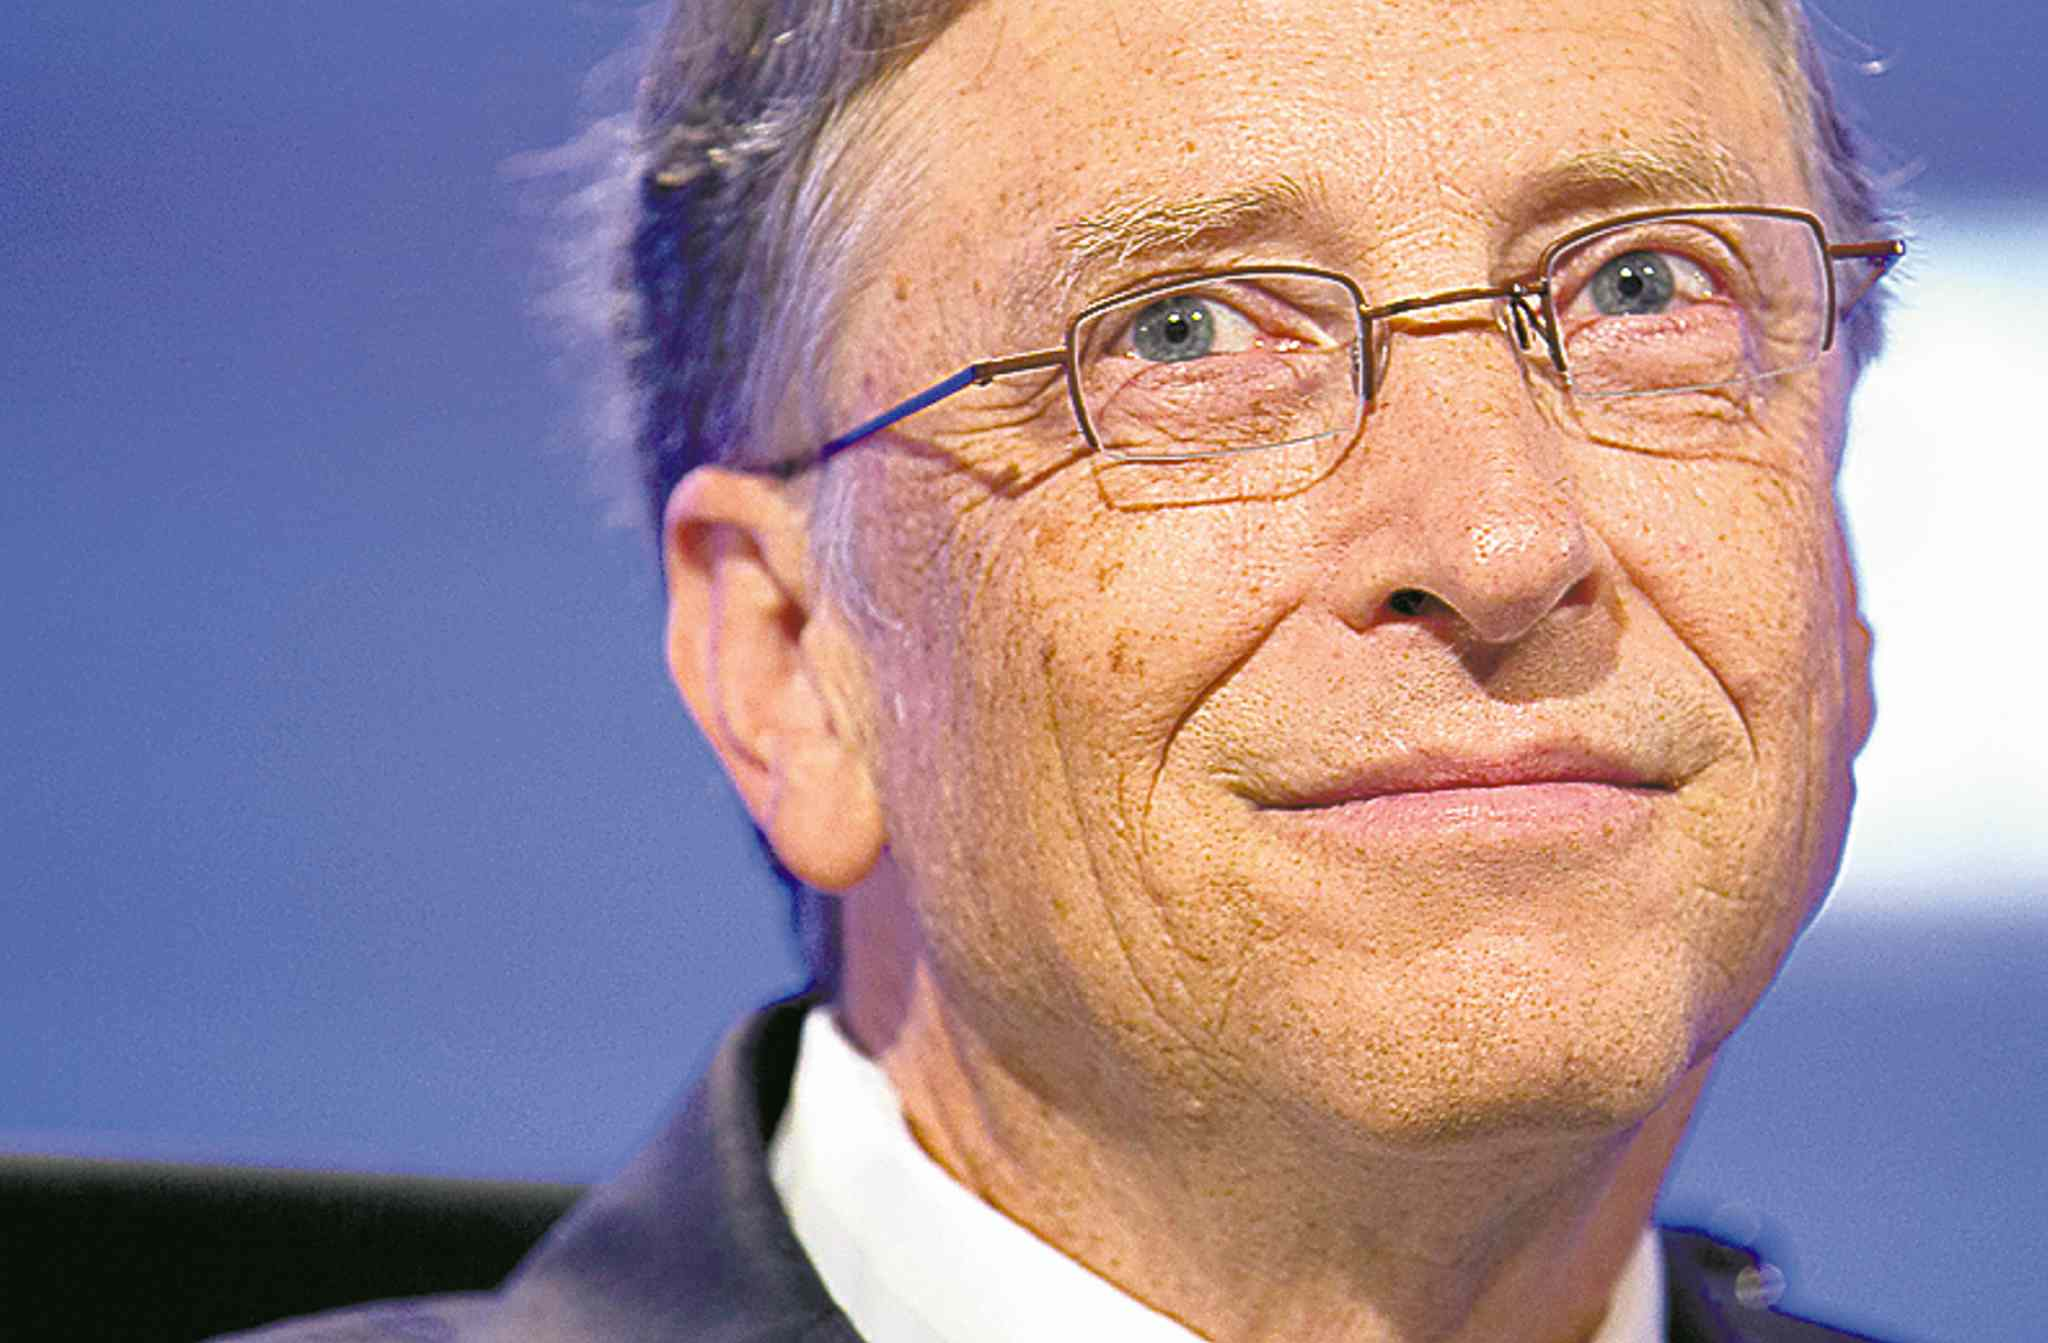 Microsoft co-founder Bill Gates remains America's richest man.